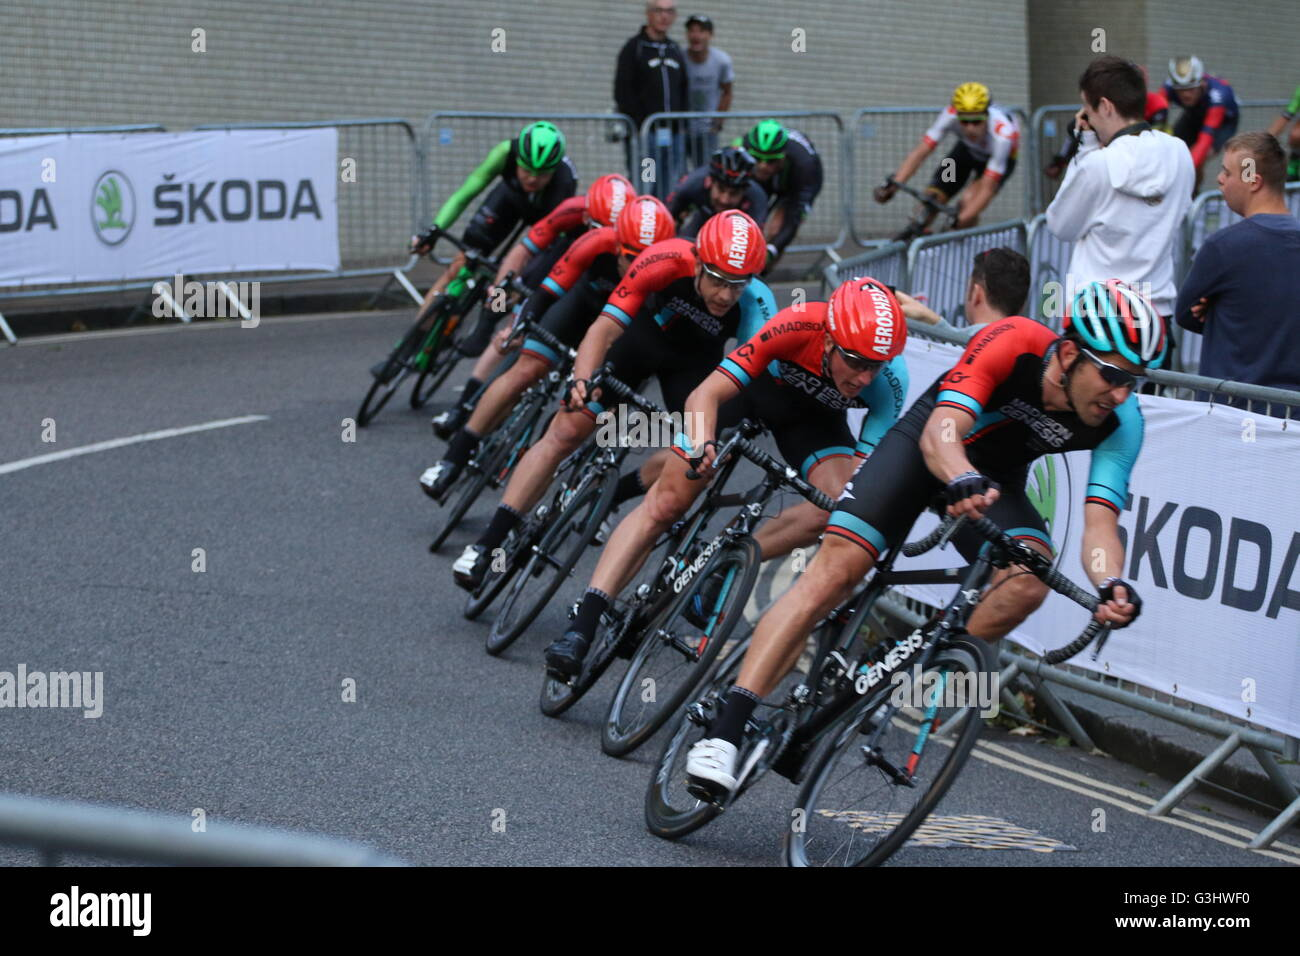 Cycling Team Madison Genesi competere in Portsmouth serie Tour 2016 Criterium ciclo Immagini Stock